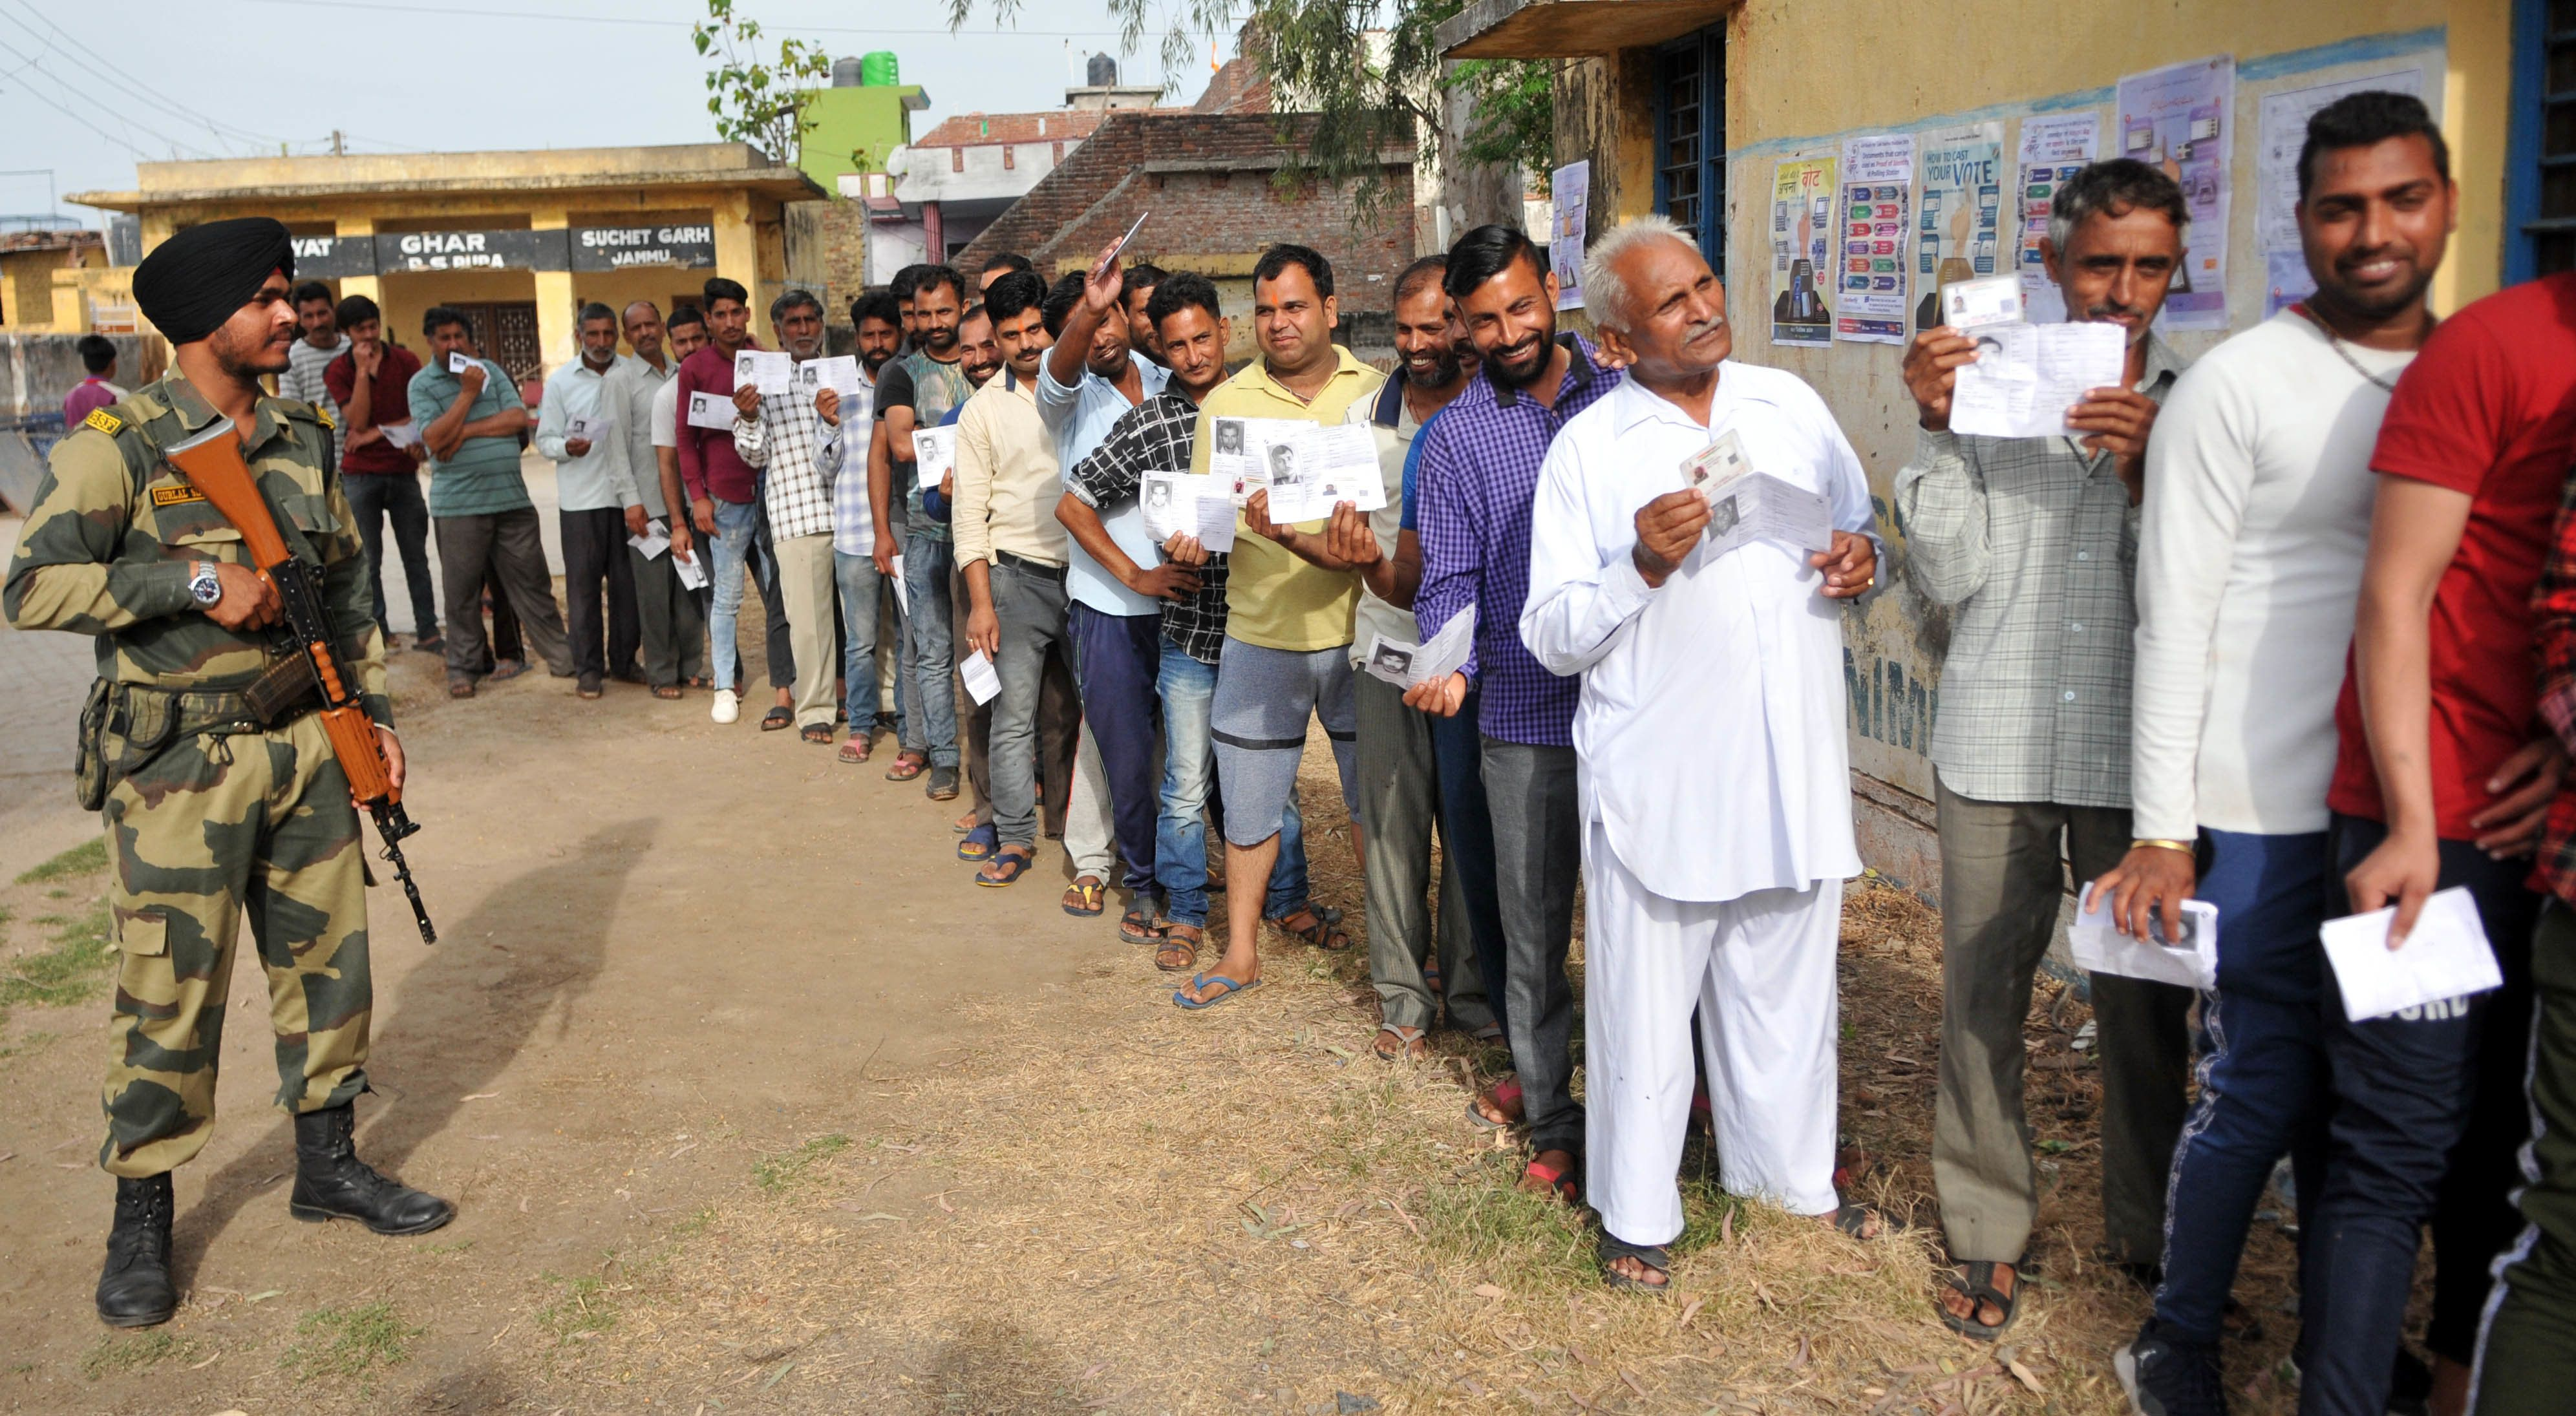 Kashmir Shia Muslims Conflicted About Elections As BJP Courts Their